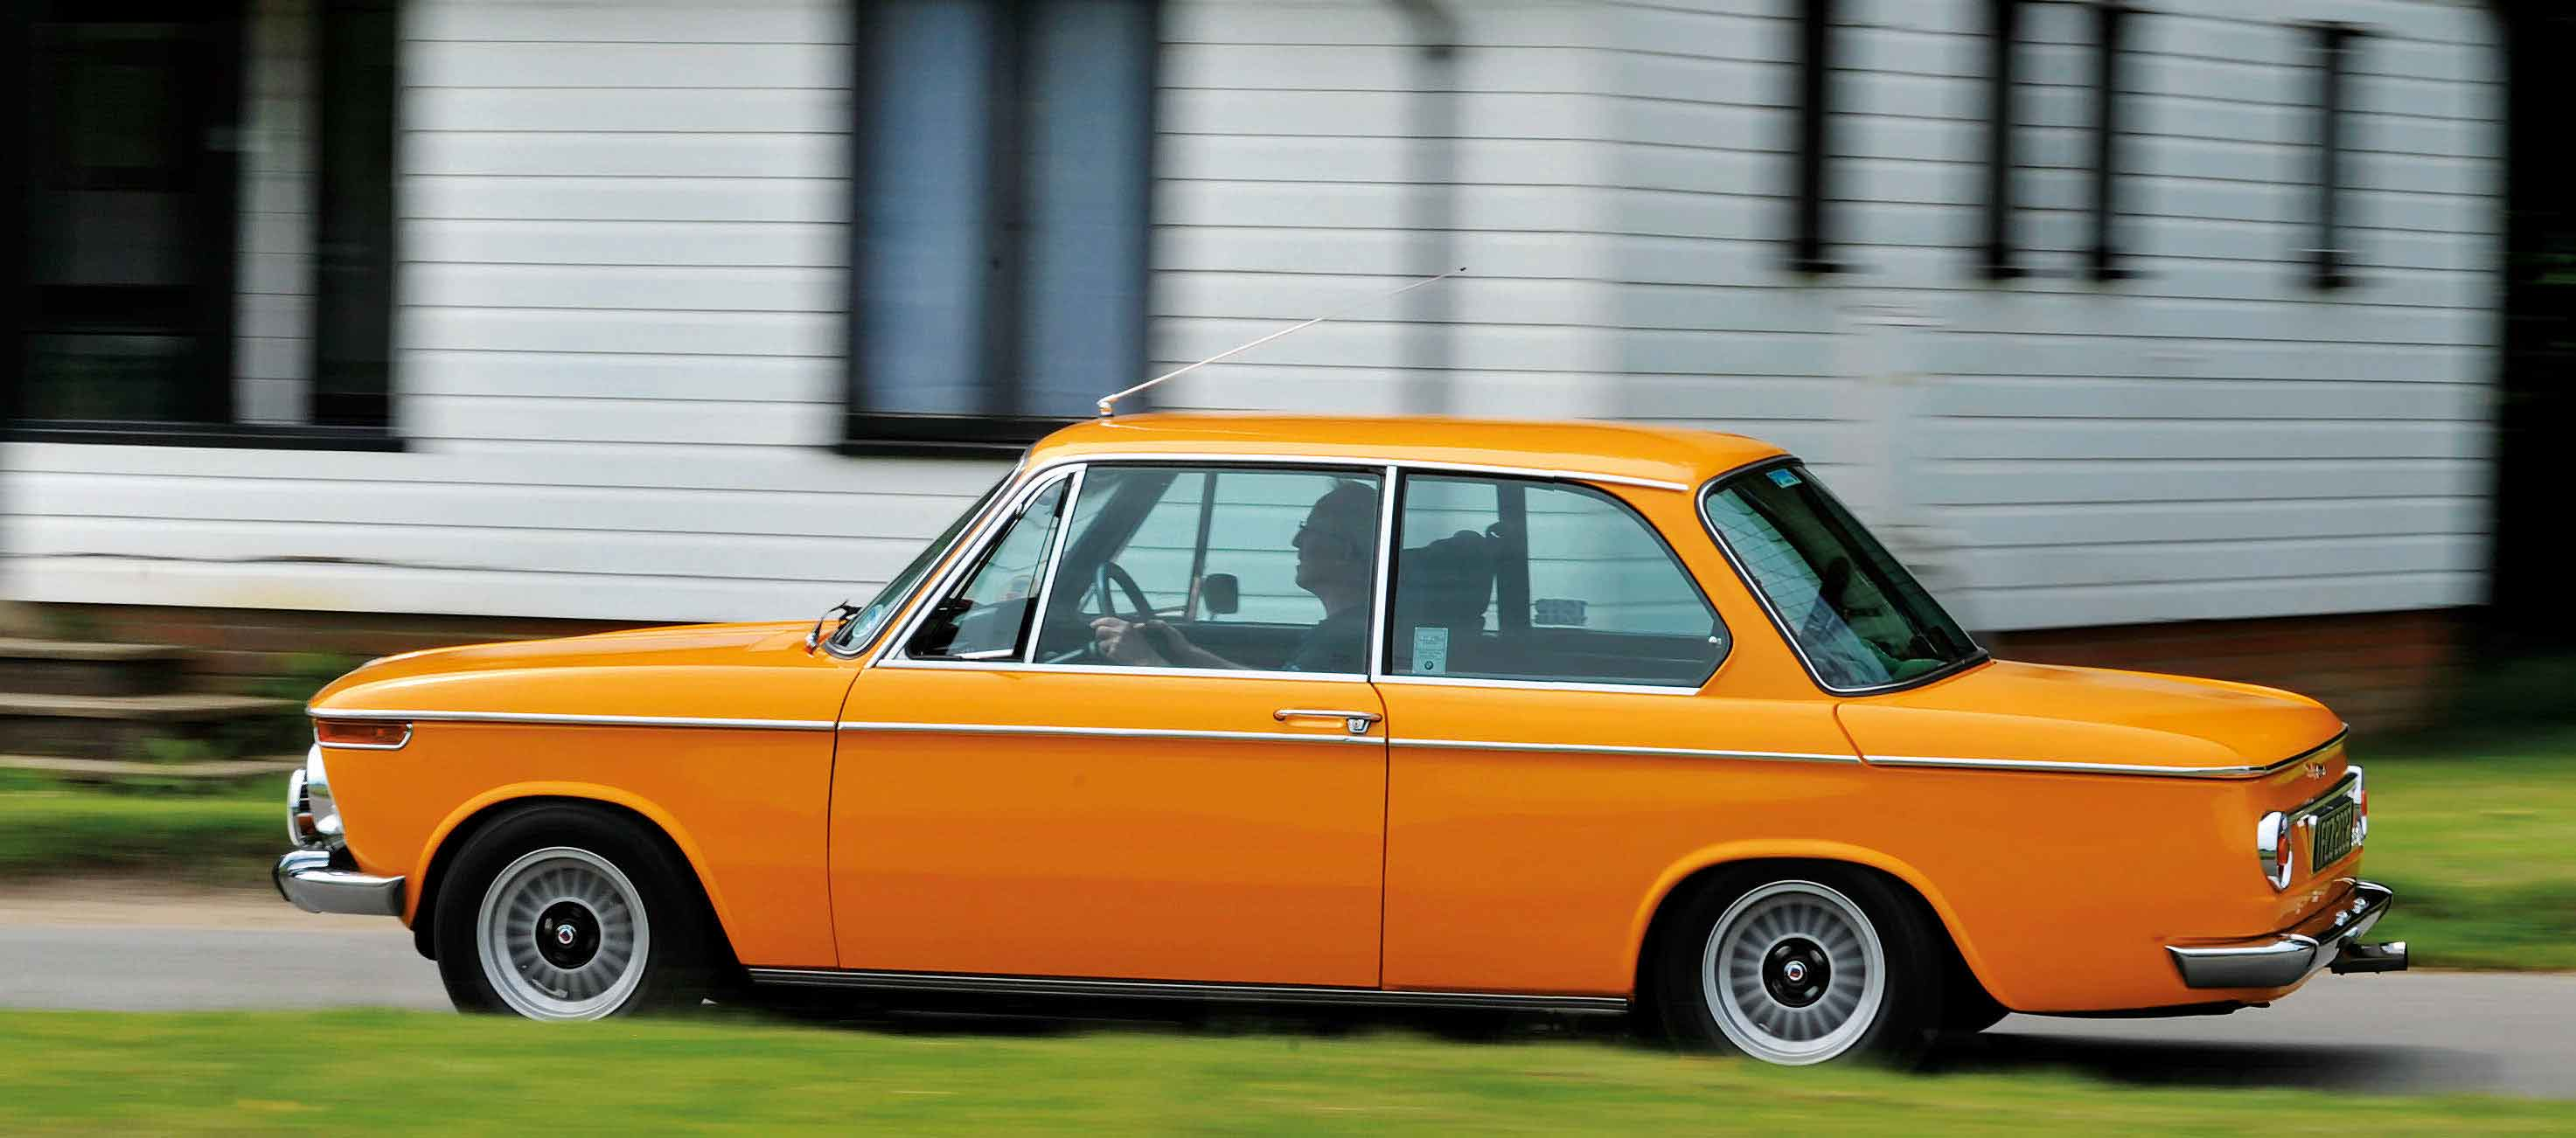 1974 Bmw 2002 Tii Value Thxsiempre